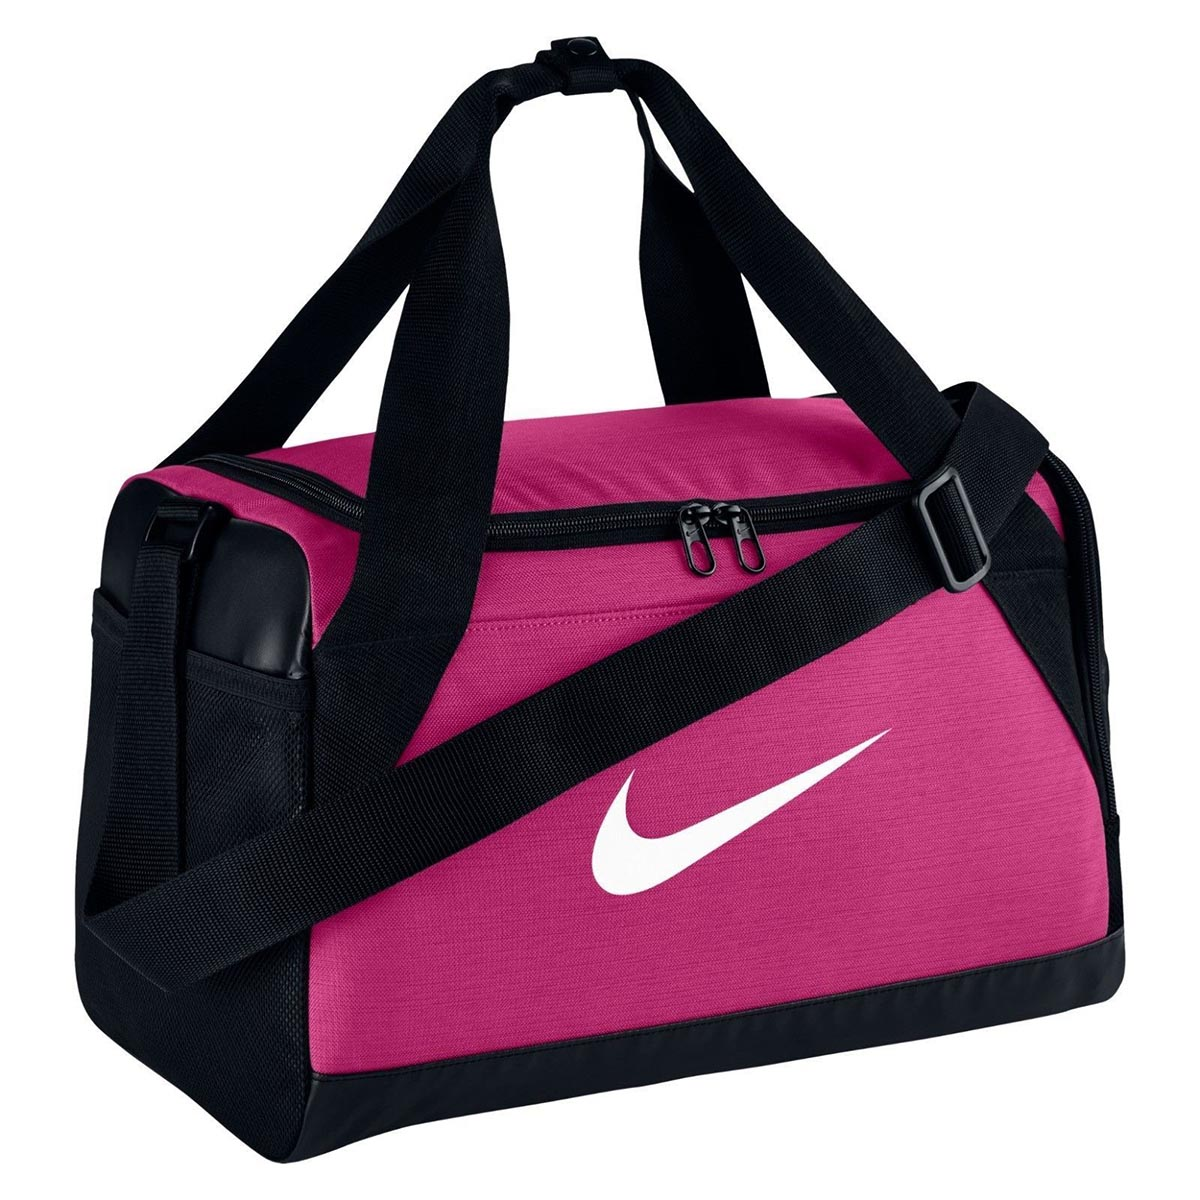 c66d42ddc4c7 Buy Nike Brasilia XS Duffle Bag (Pink Black) Online at Lowest Price in India